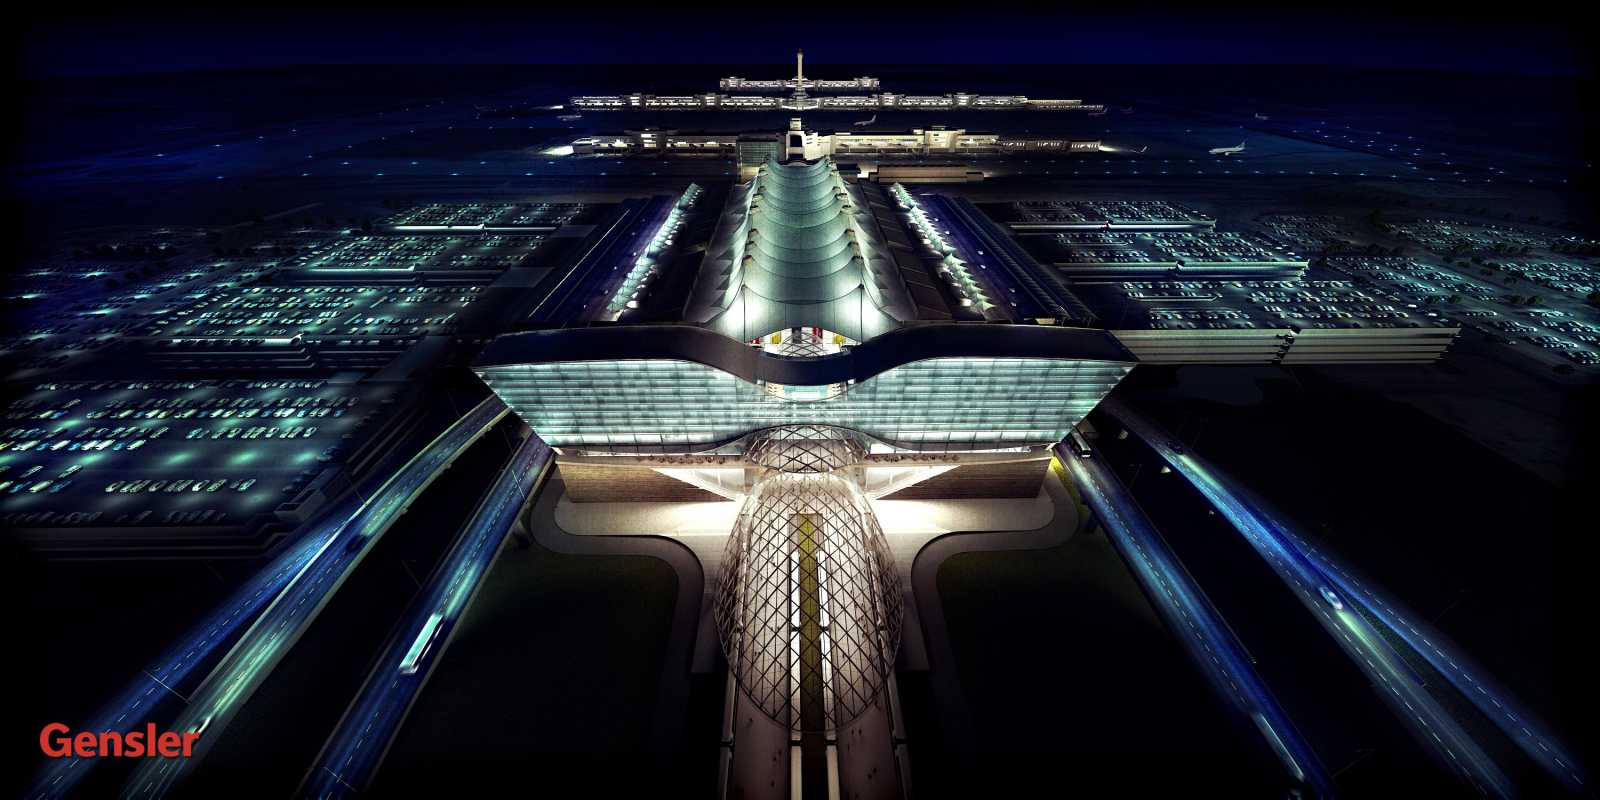 denver-international-airport-dia-shuttle-transportation-limo-executive-car-corporate-limousine-service